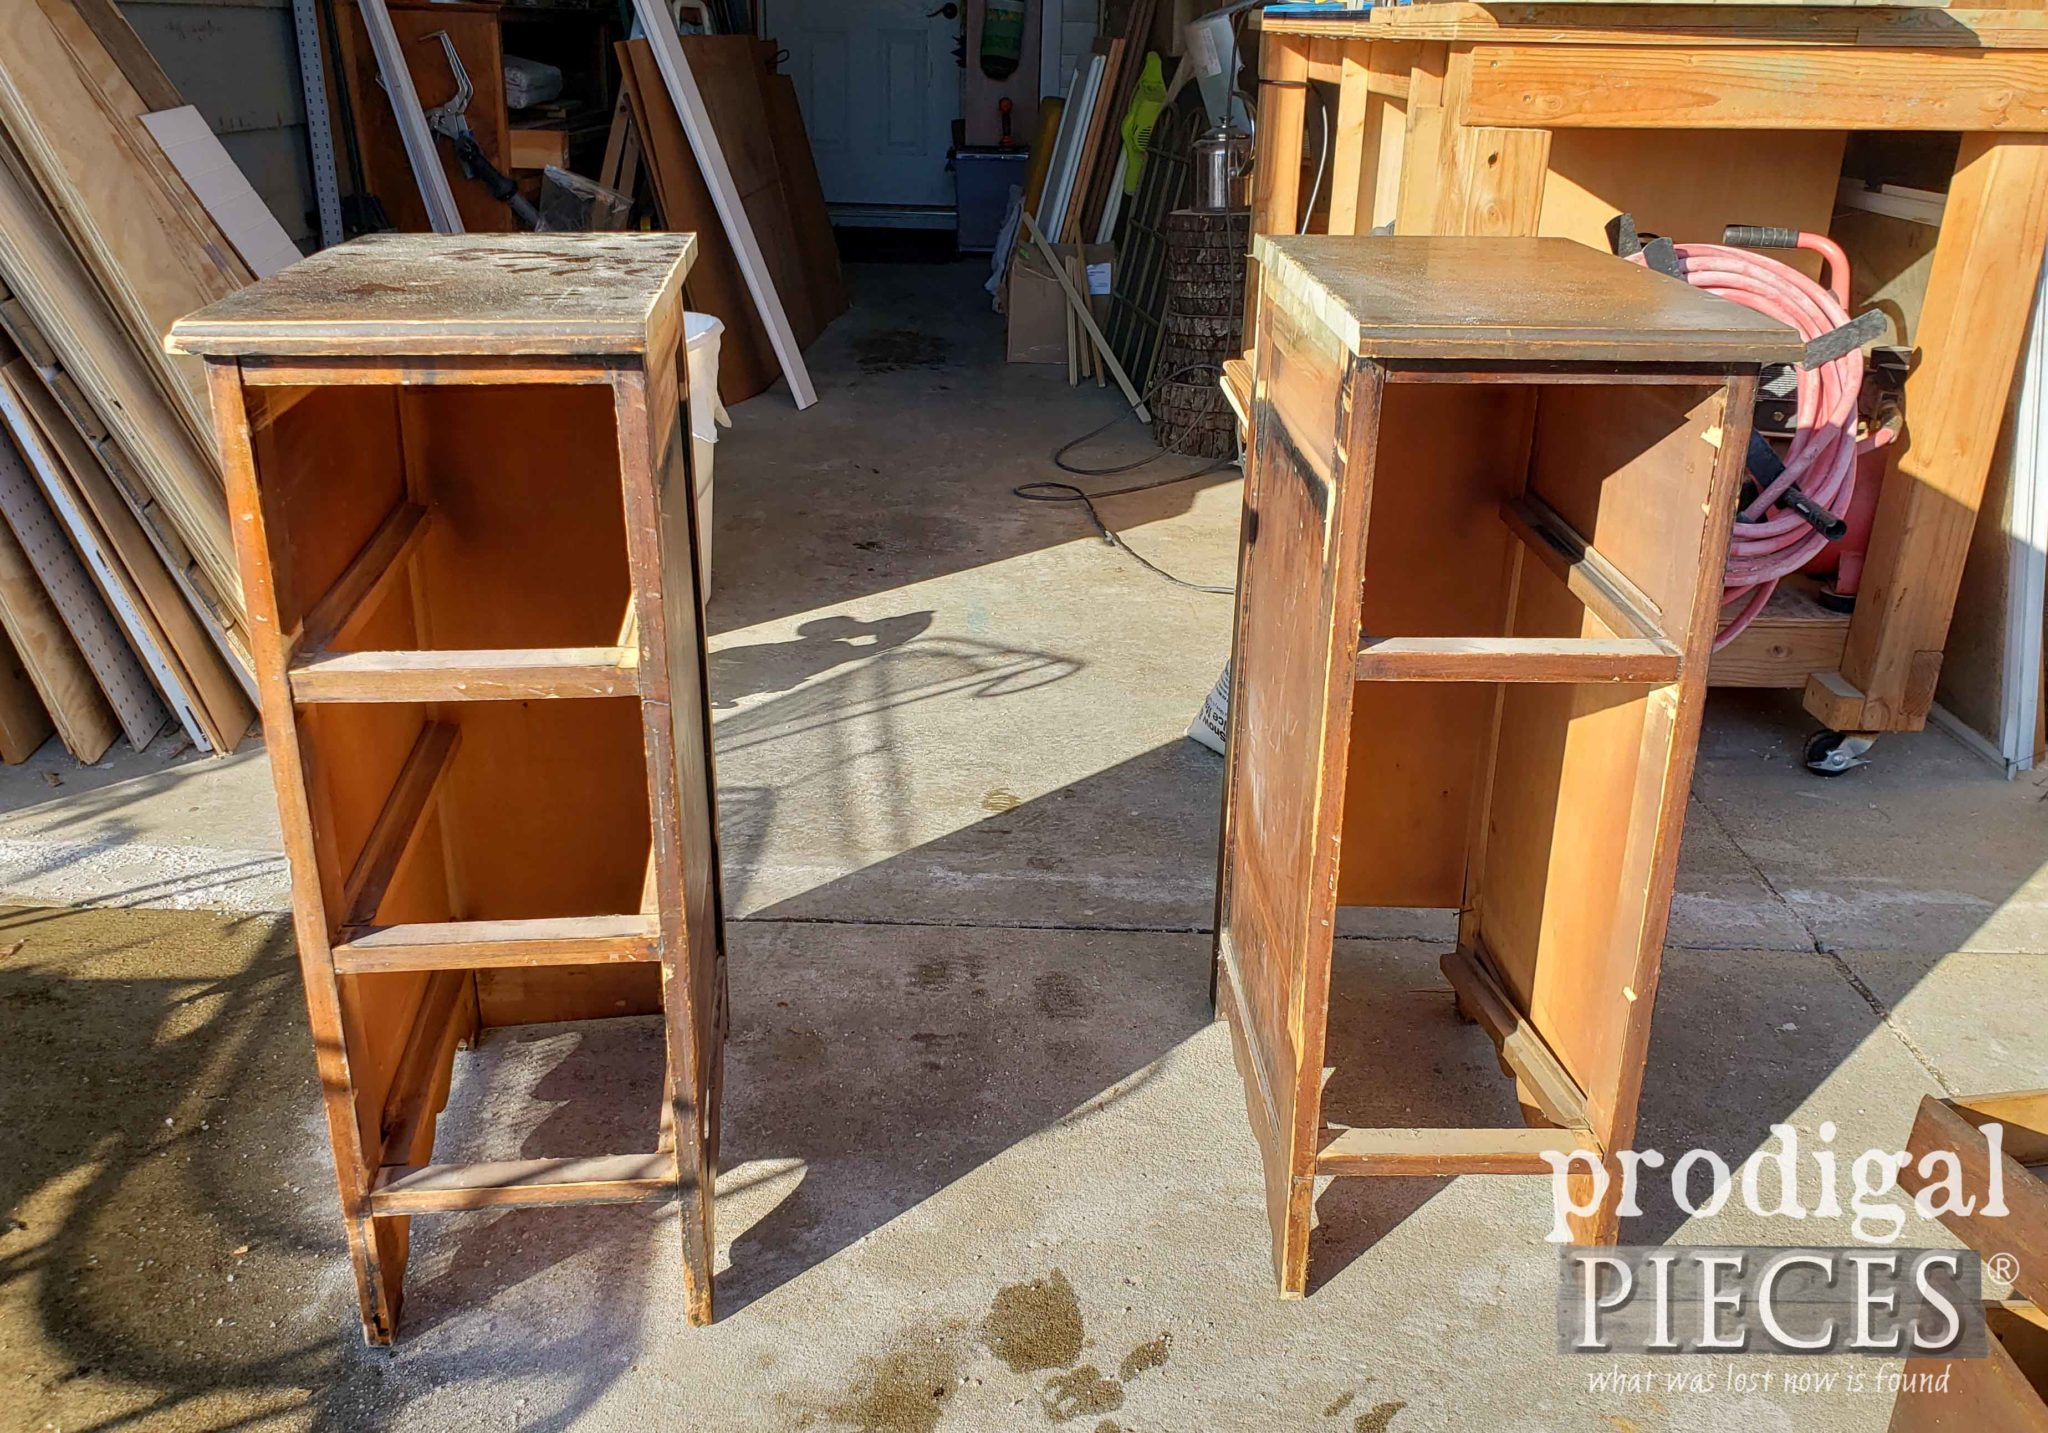 Dry Fit of DIY Nightstands from Antique Desk | prodigalpieces.com